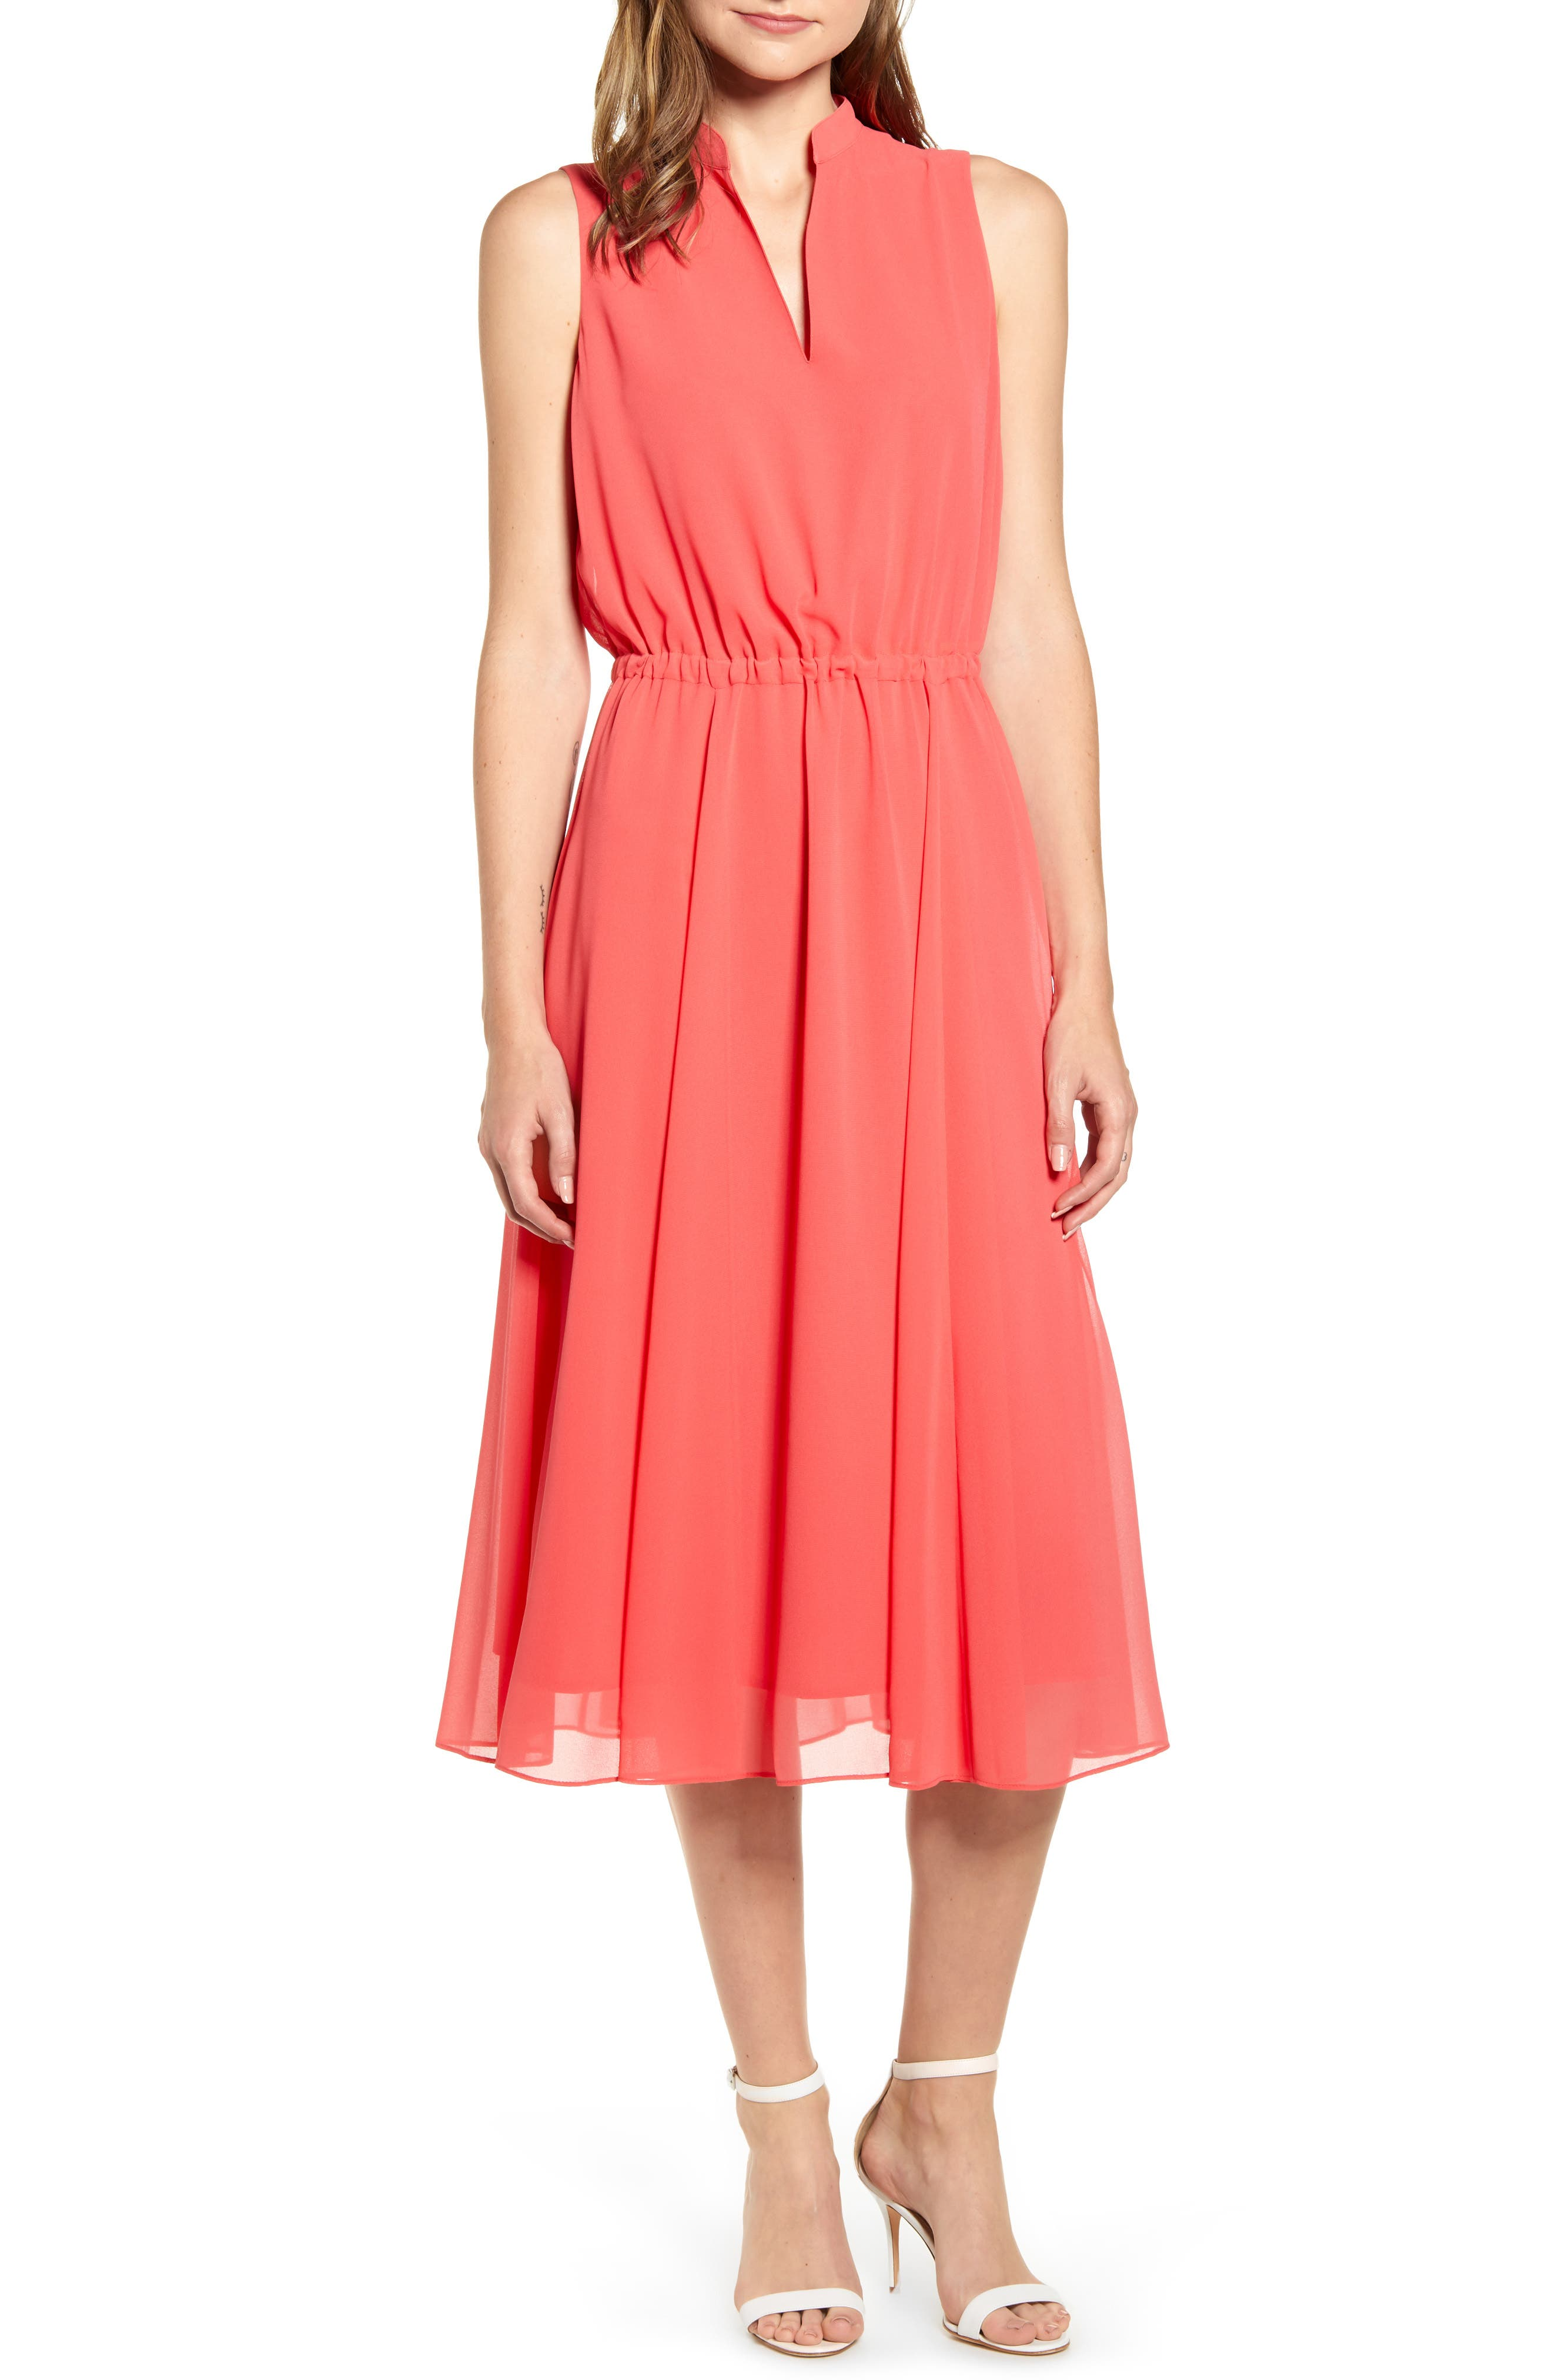 Anne Klein Drawstring Midi Dress, Pink